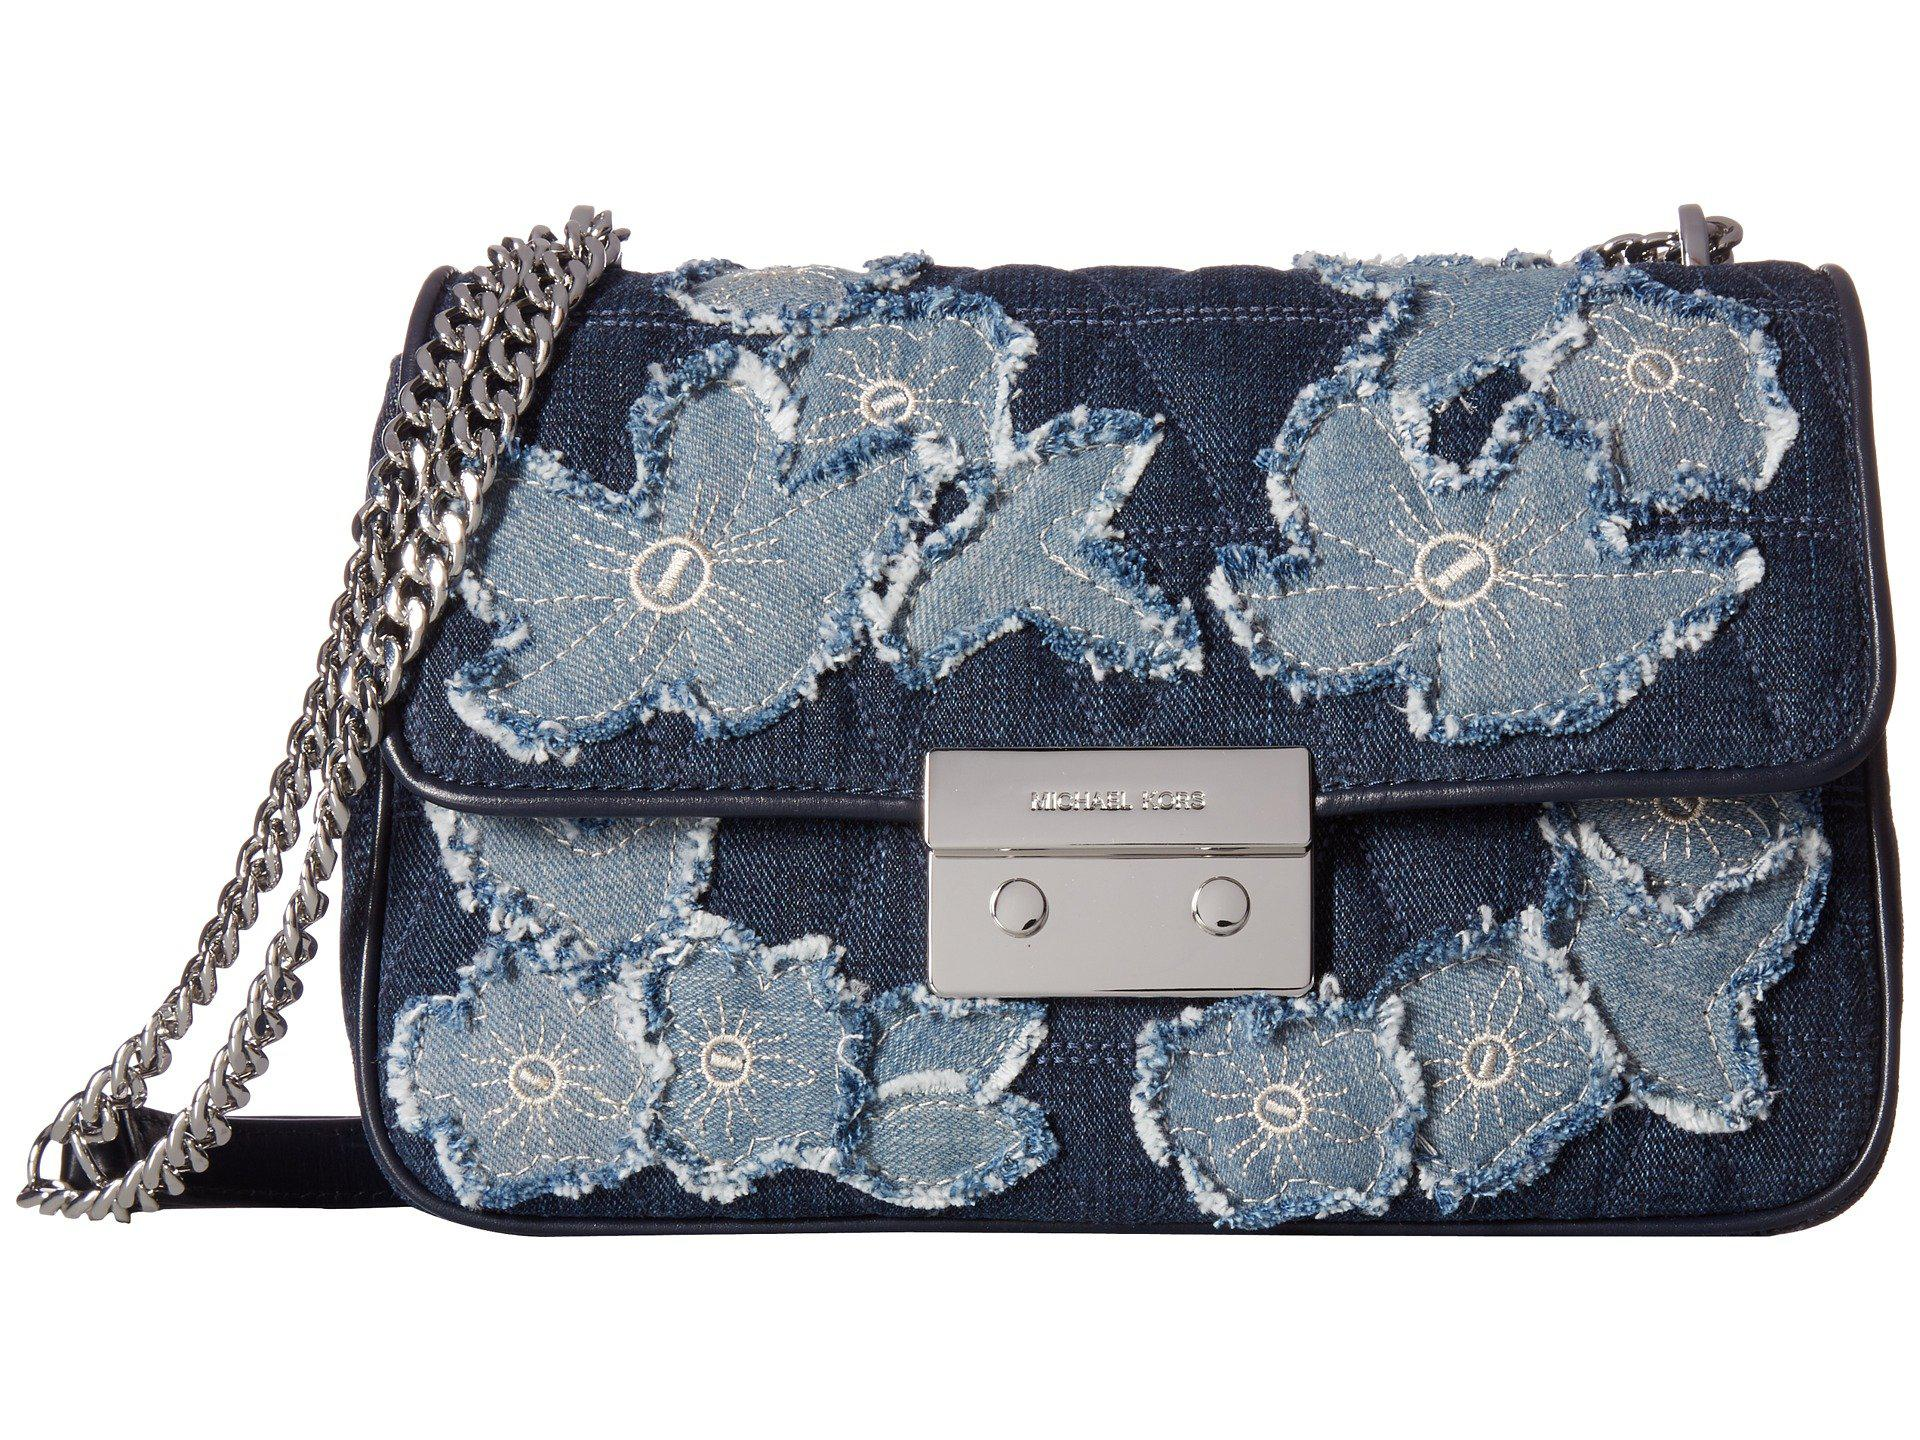 4e093a3b44cd Gallery. Previously sold at: 6PM, Zappos · Women's Michael By Michael Kors  Sloan ...